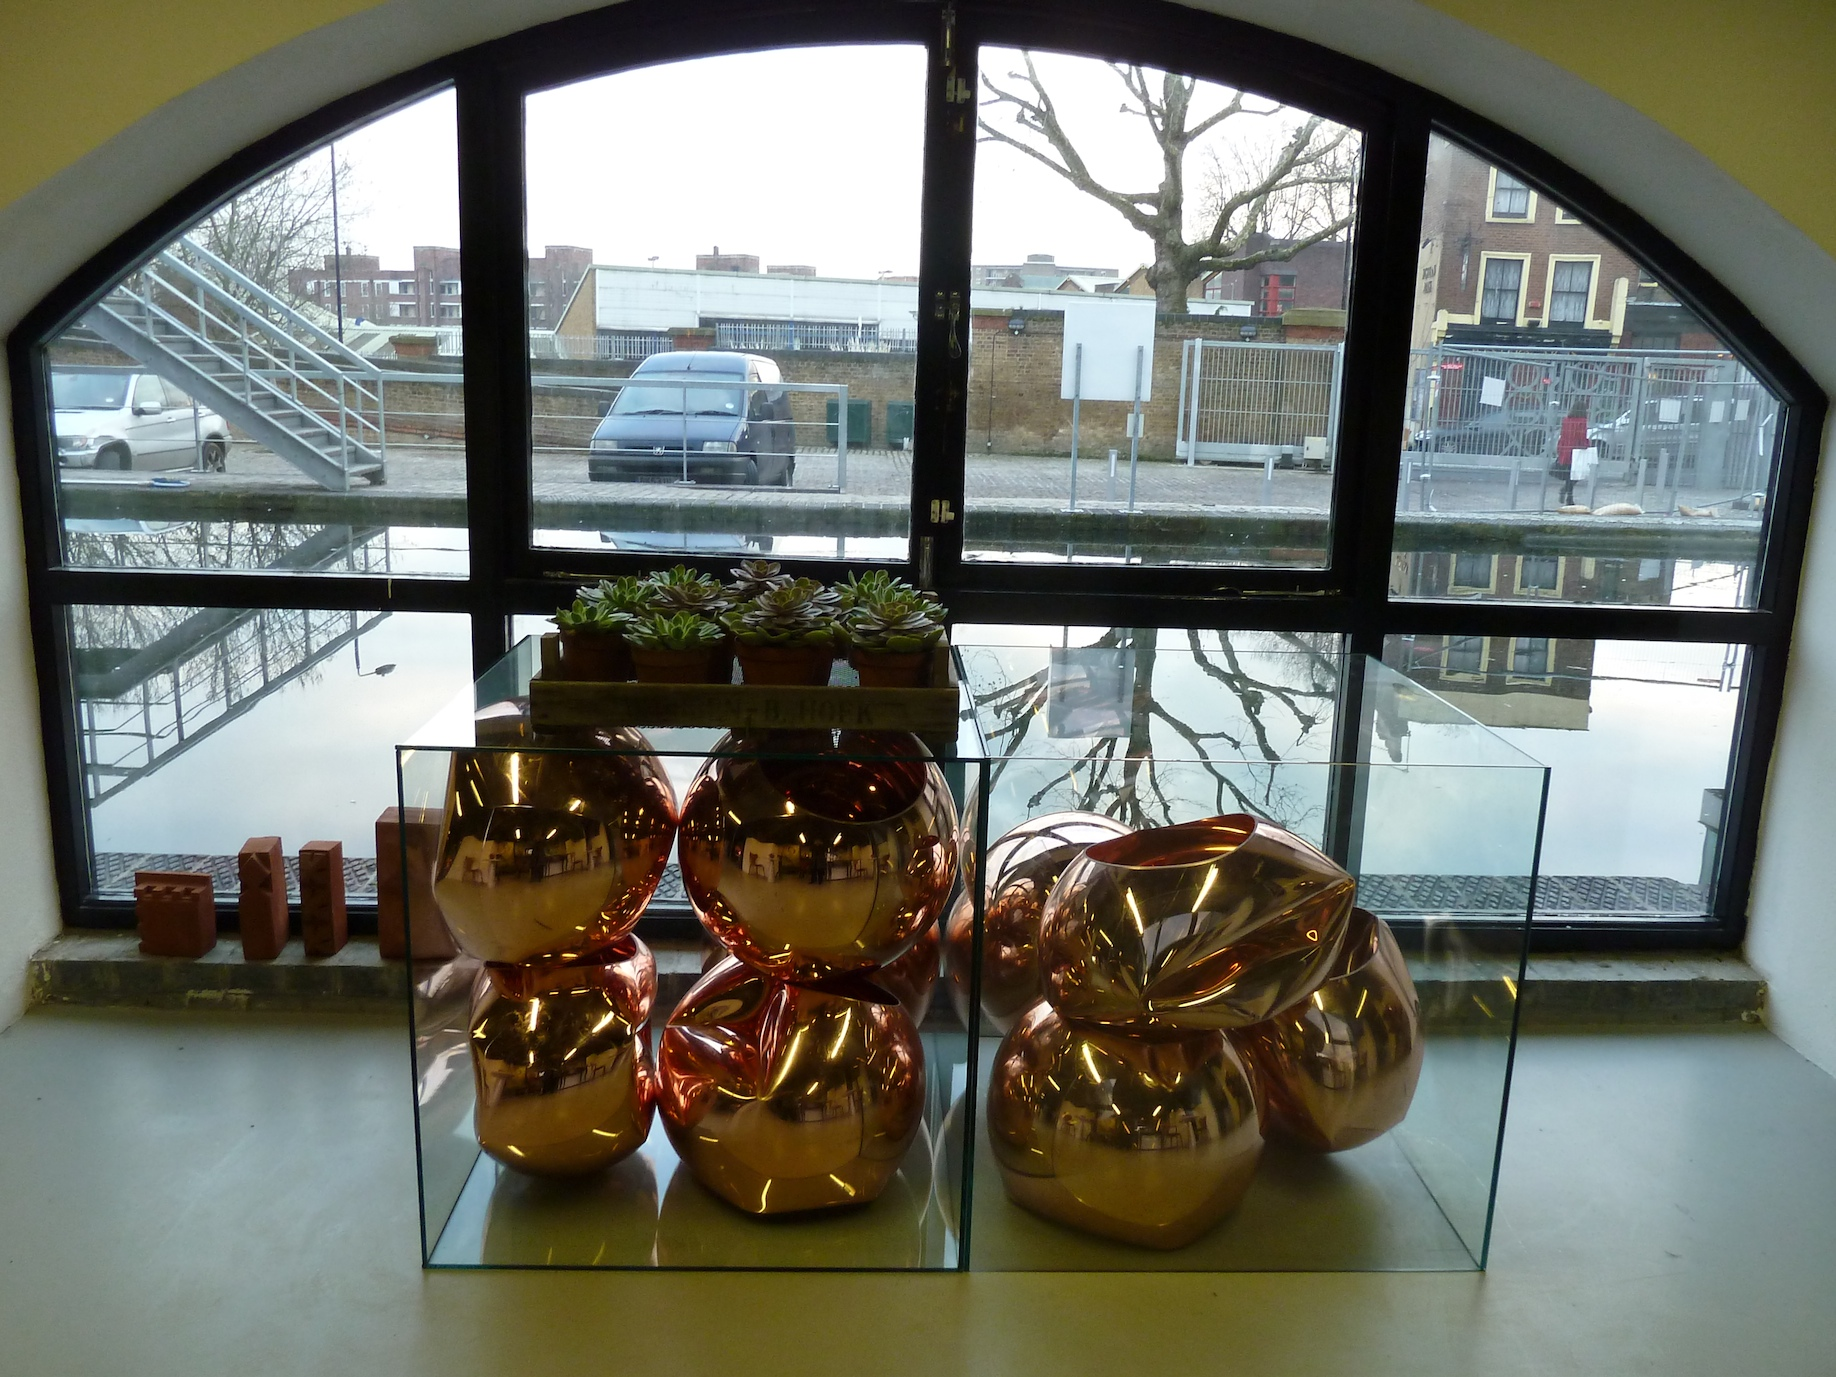 Lower level entry to the Tom Dixon shop at Portobello Dock